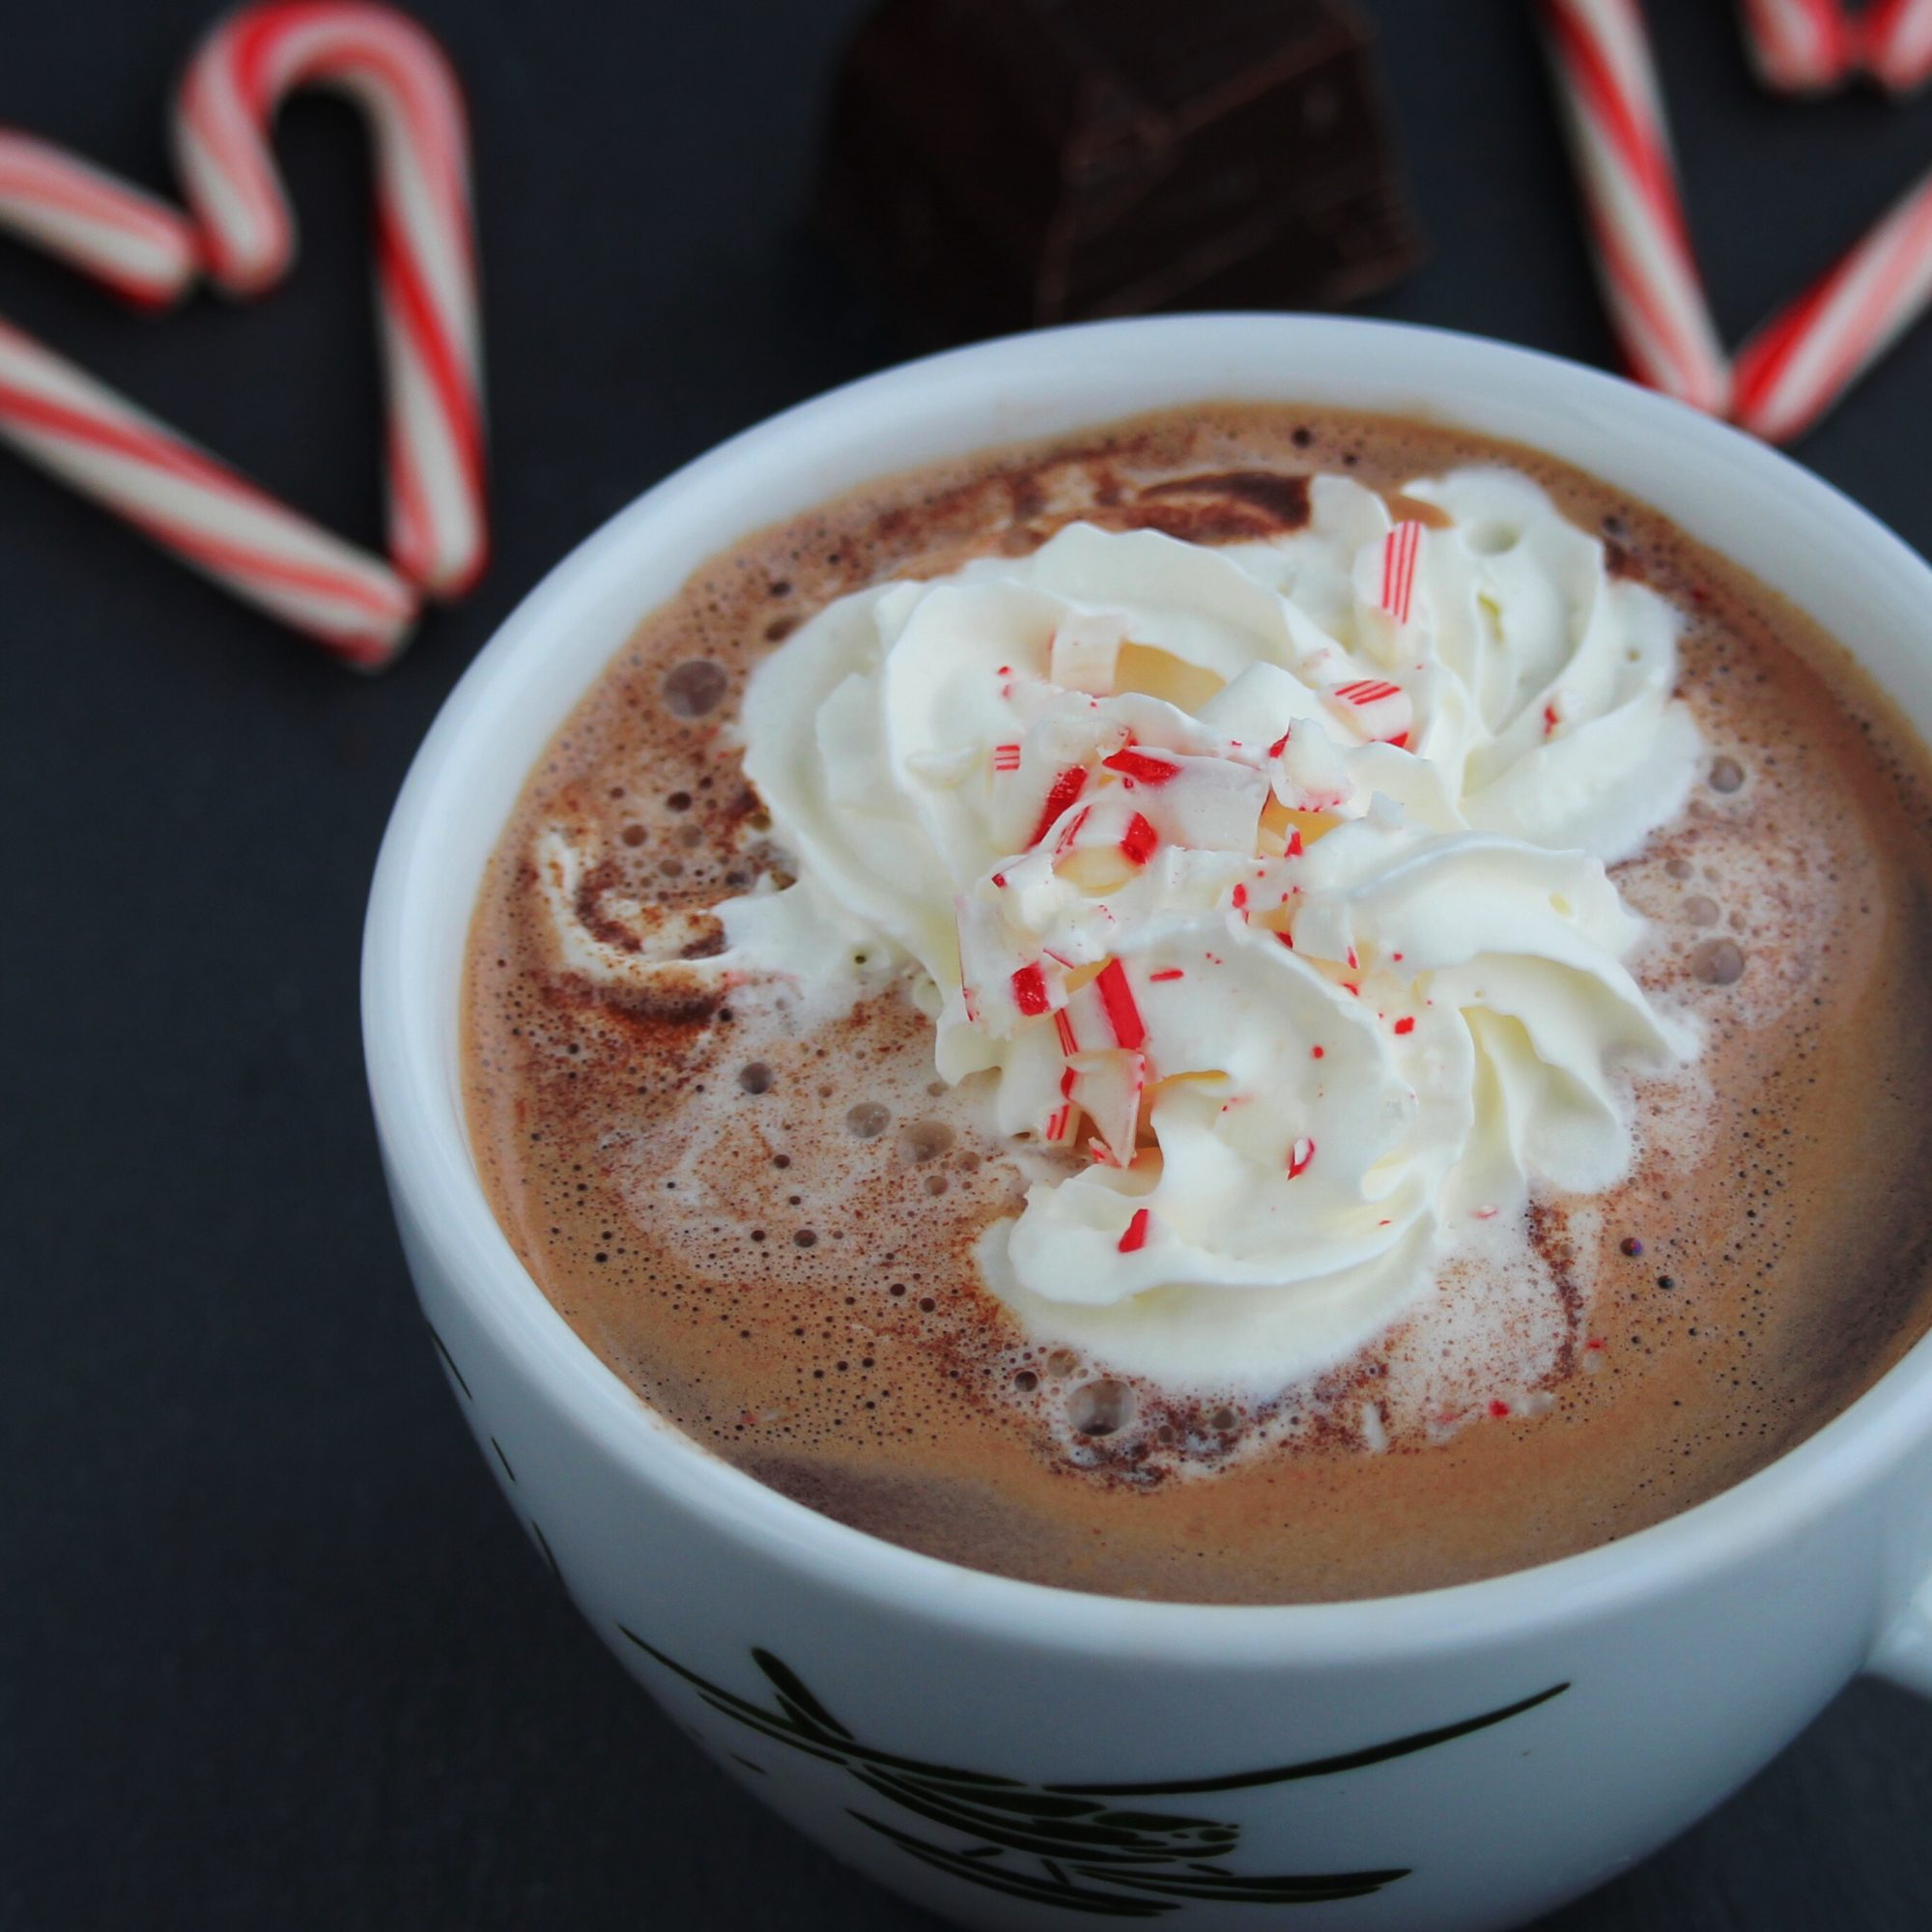 hot chocolate with candy canes and whipped cream